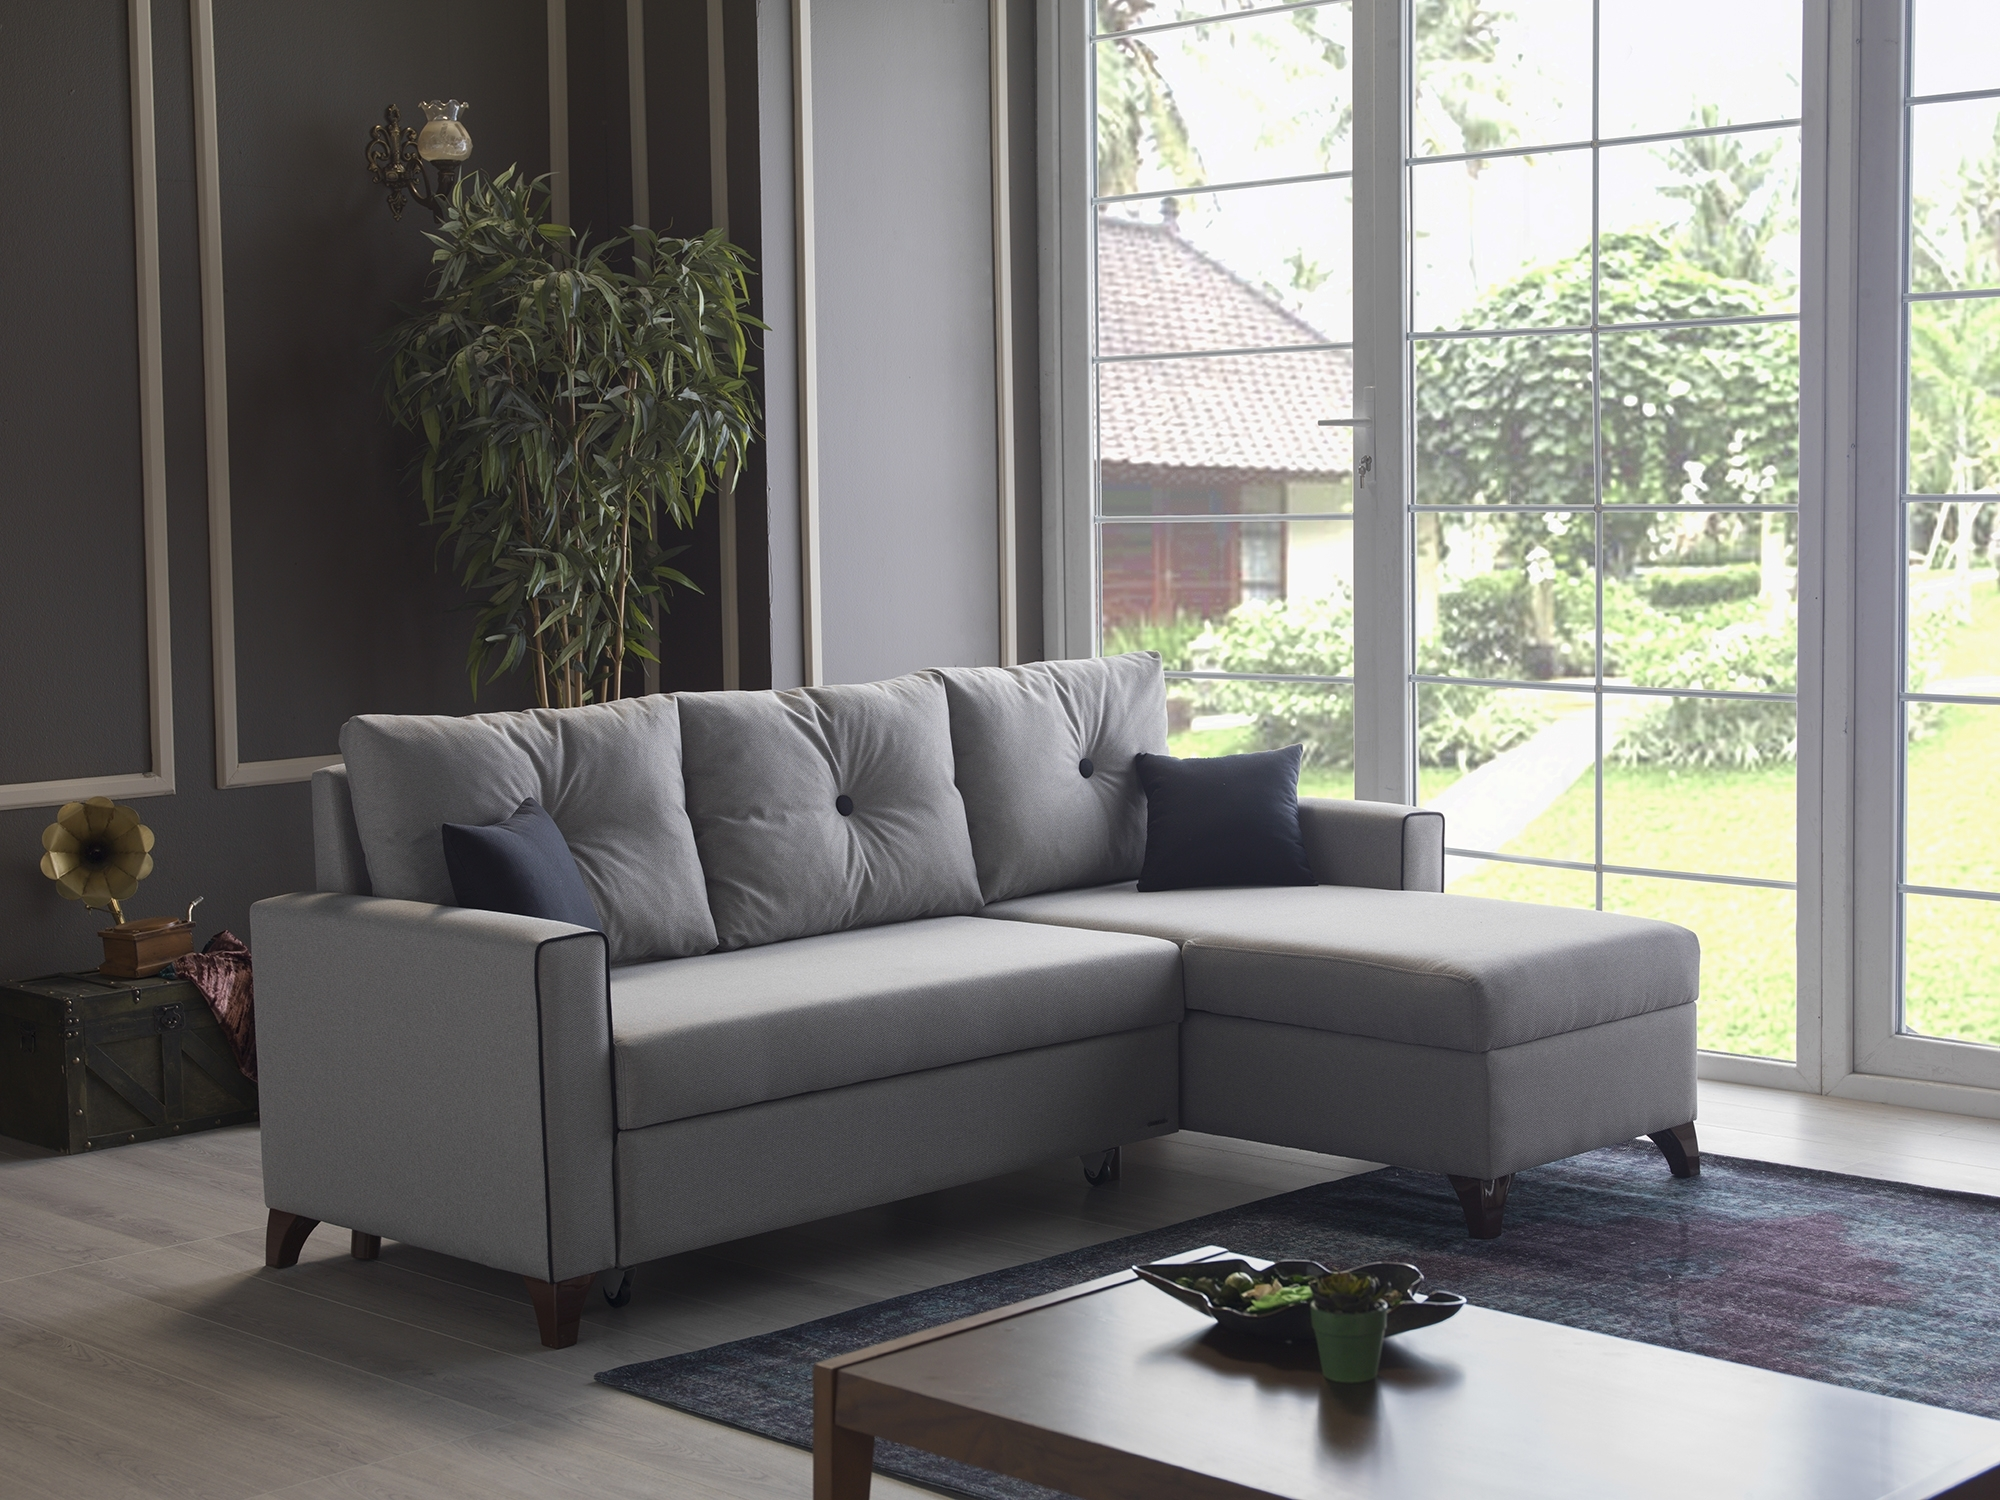 Sealy Sectional Sofa Bed | Baci Living Room regarding Lucy Grey 2 Piece Sectionals With Raf Chaise (Image 26 of 30)